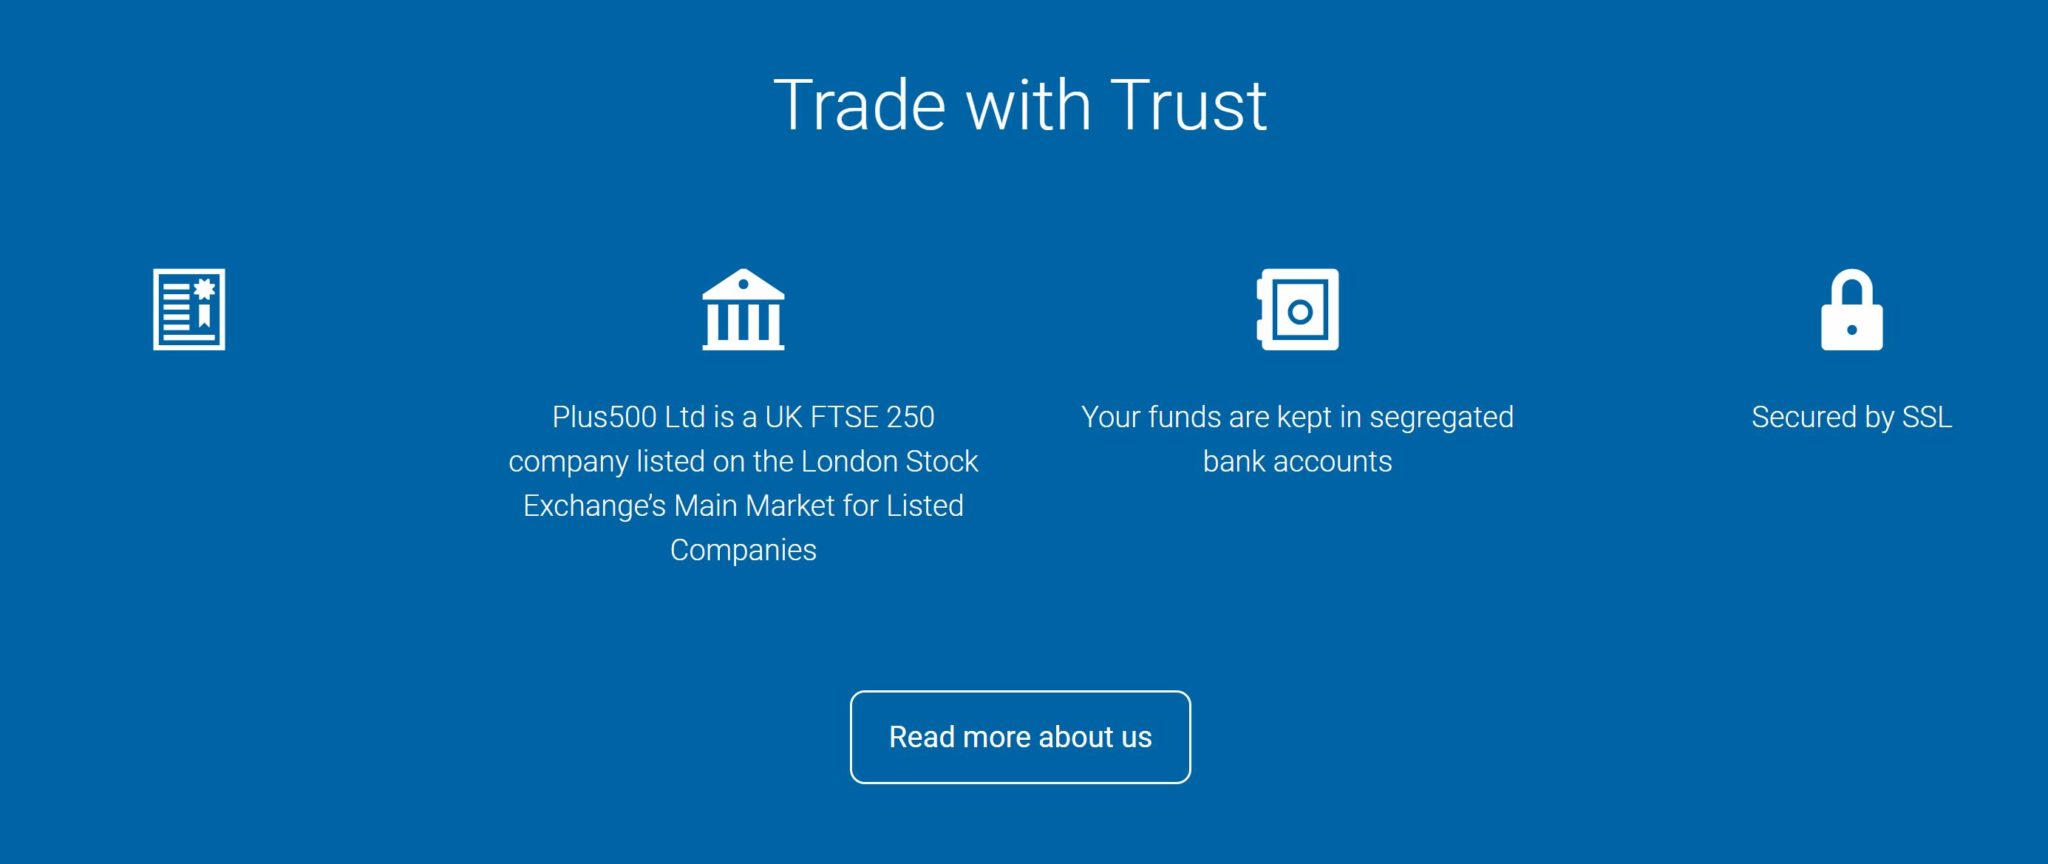 Plus500 is regulated by the FCA and publicly traded.